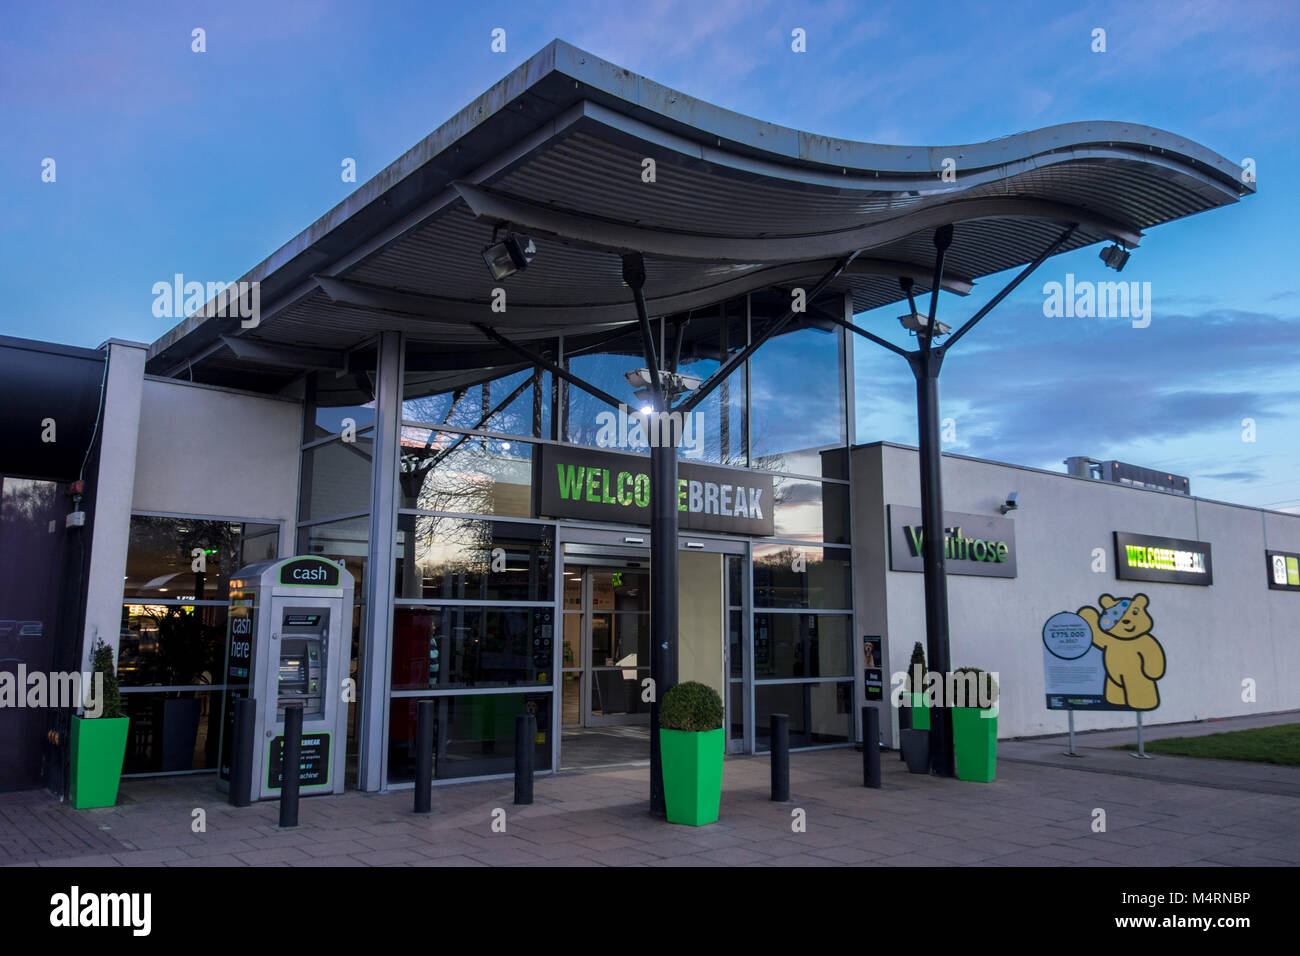 Welcome Break motorway services on the M6 Corley, UK - Stock Image